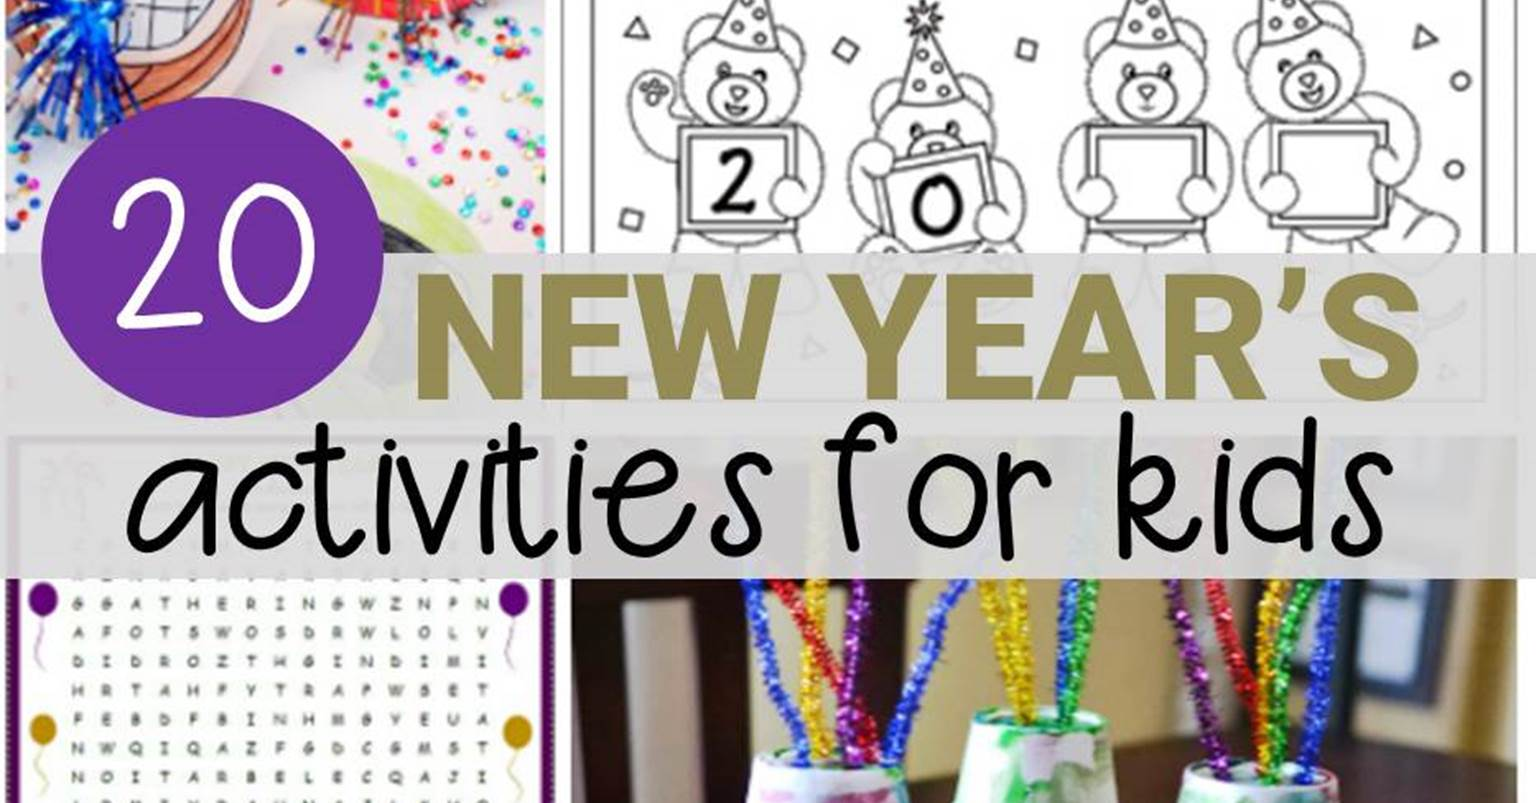 20 New Year's Activities for Kids - fun for classroom or home!